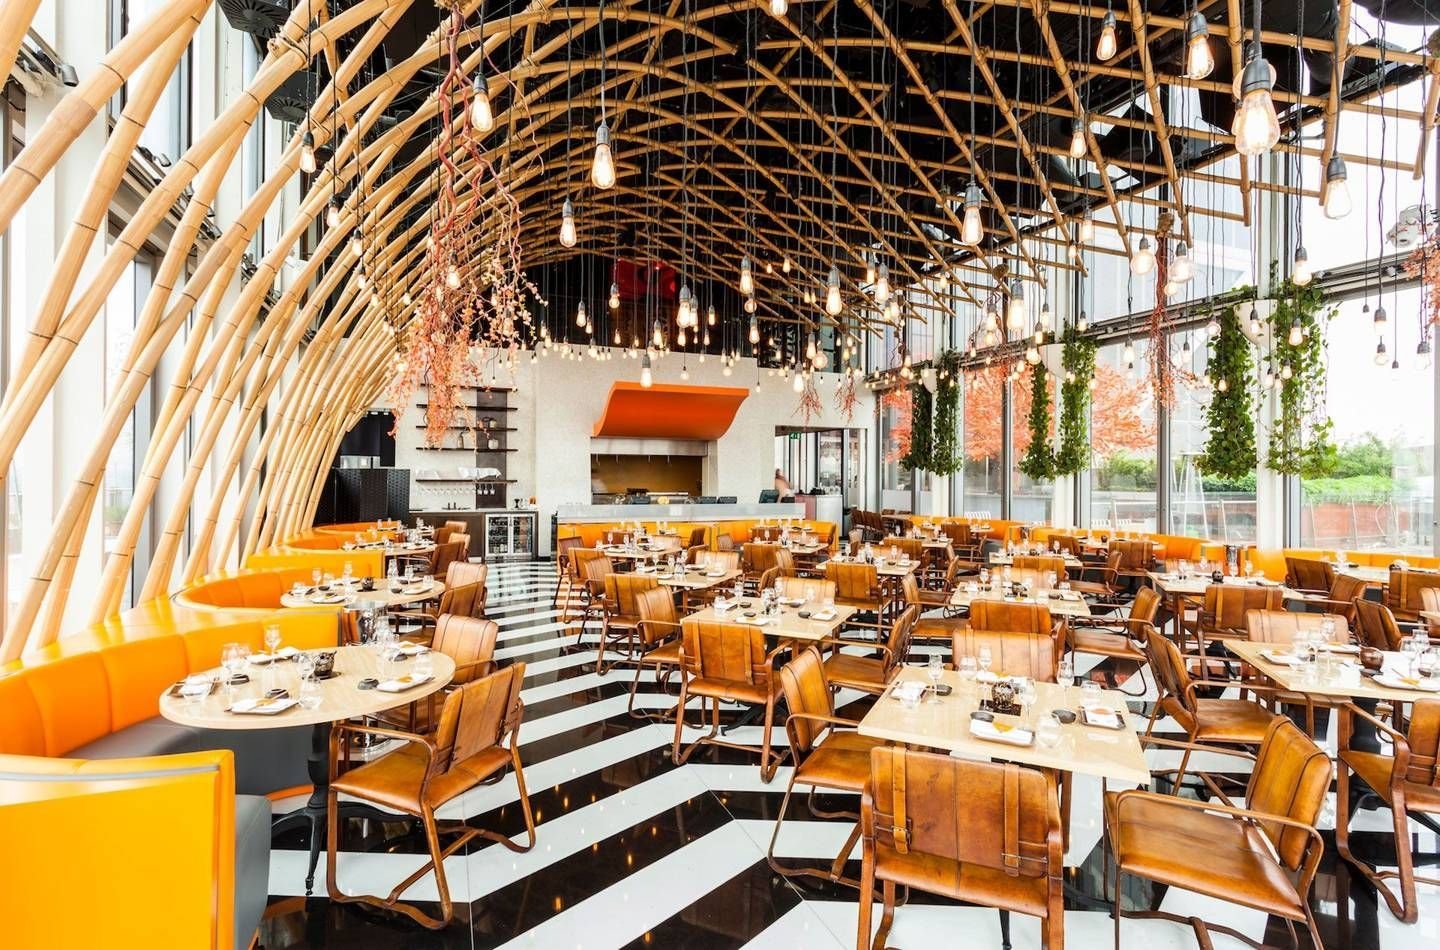 Rooftop Bars London From Radio Rooftop Bar To Dalston Roof Gardens British Gq Best Rooftop Bars London Bars London Decor